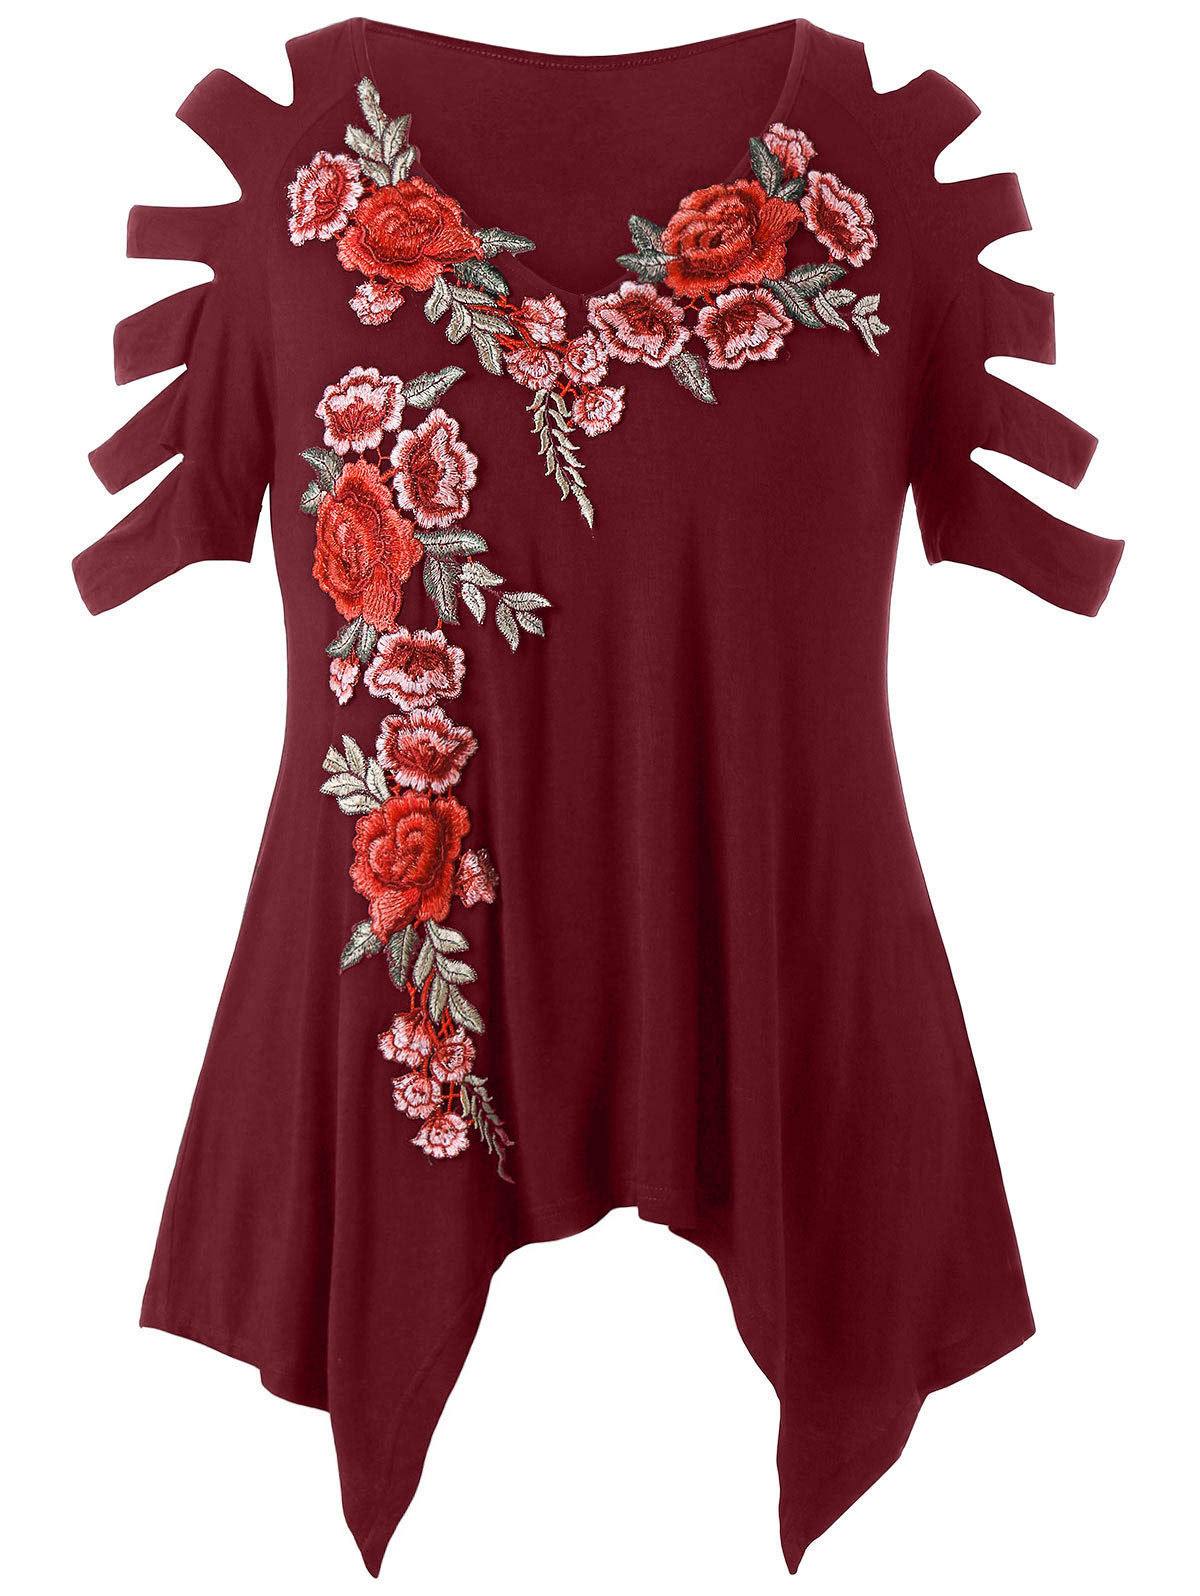 Wipalo Plus Size 5xl T-shirt Women Ladder Cut Embroidery T Shirt Summer Tops Causal V-neck Half Sleeve T-shirts Ladies Clothes Y19042501